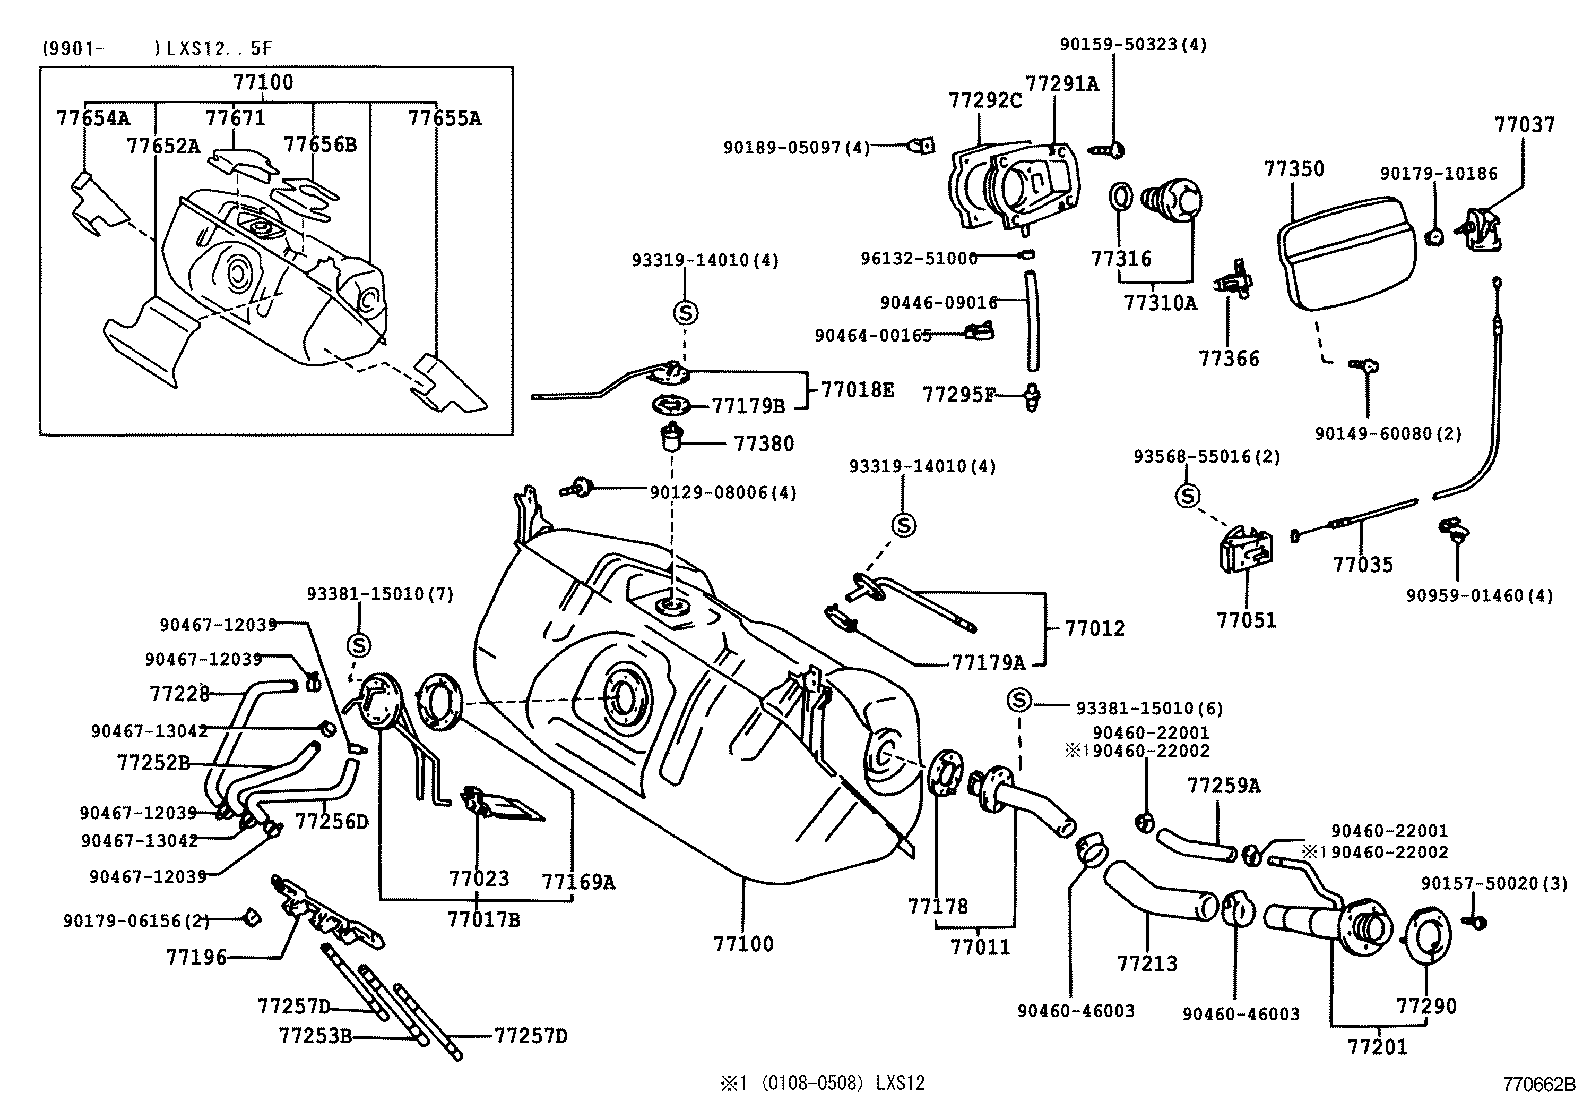 Diagram view in addition Toyota lite ace noah 2846591 p likewise 7701 fuel Tank Tube in addition 4101 rear Axle Housing Differential additionally 1702 exhaust Pipe. on 1999 toyota van liteace